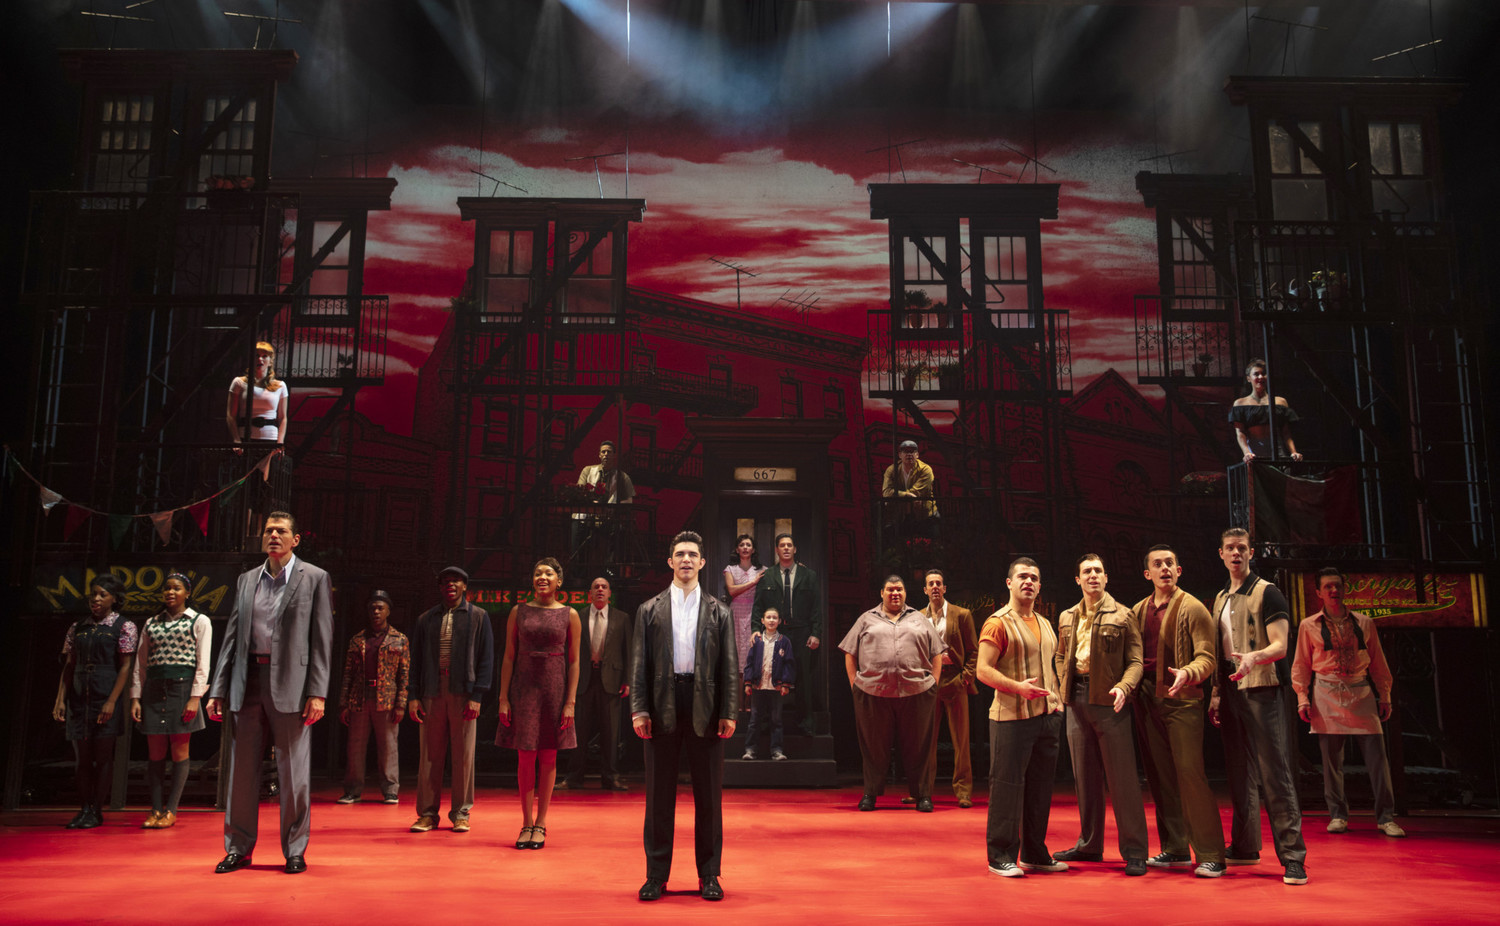 BWW Review: A BRONX TALE at the National Theatre is Disappointingly Disjointed